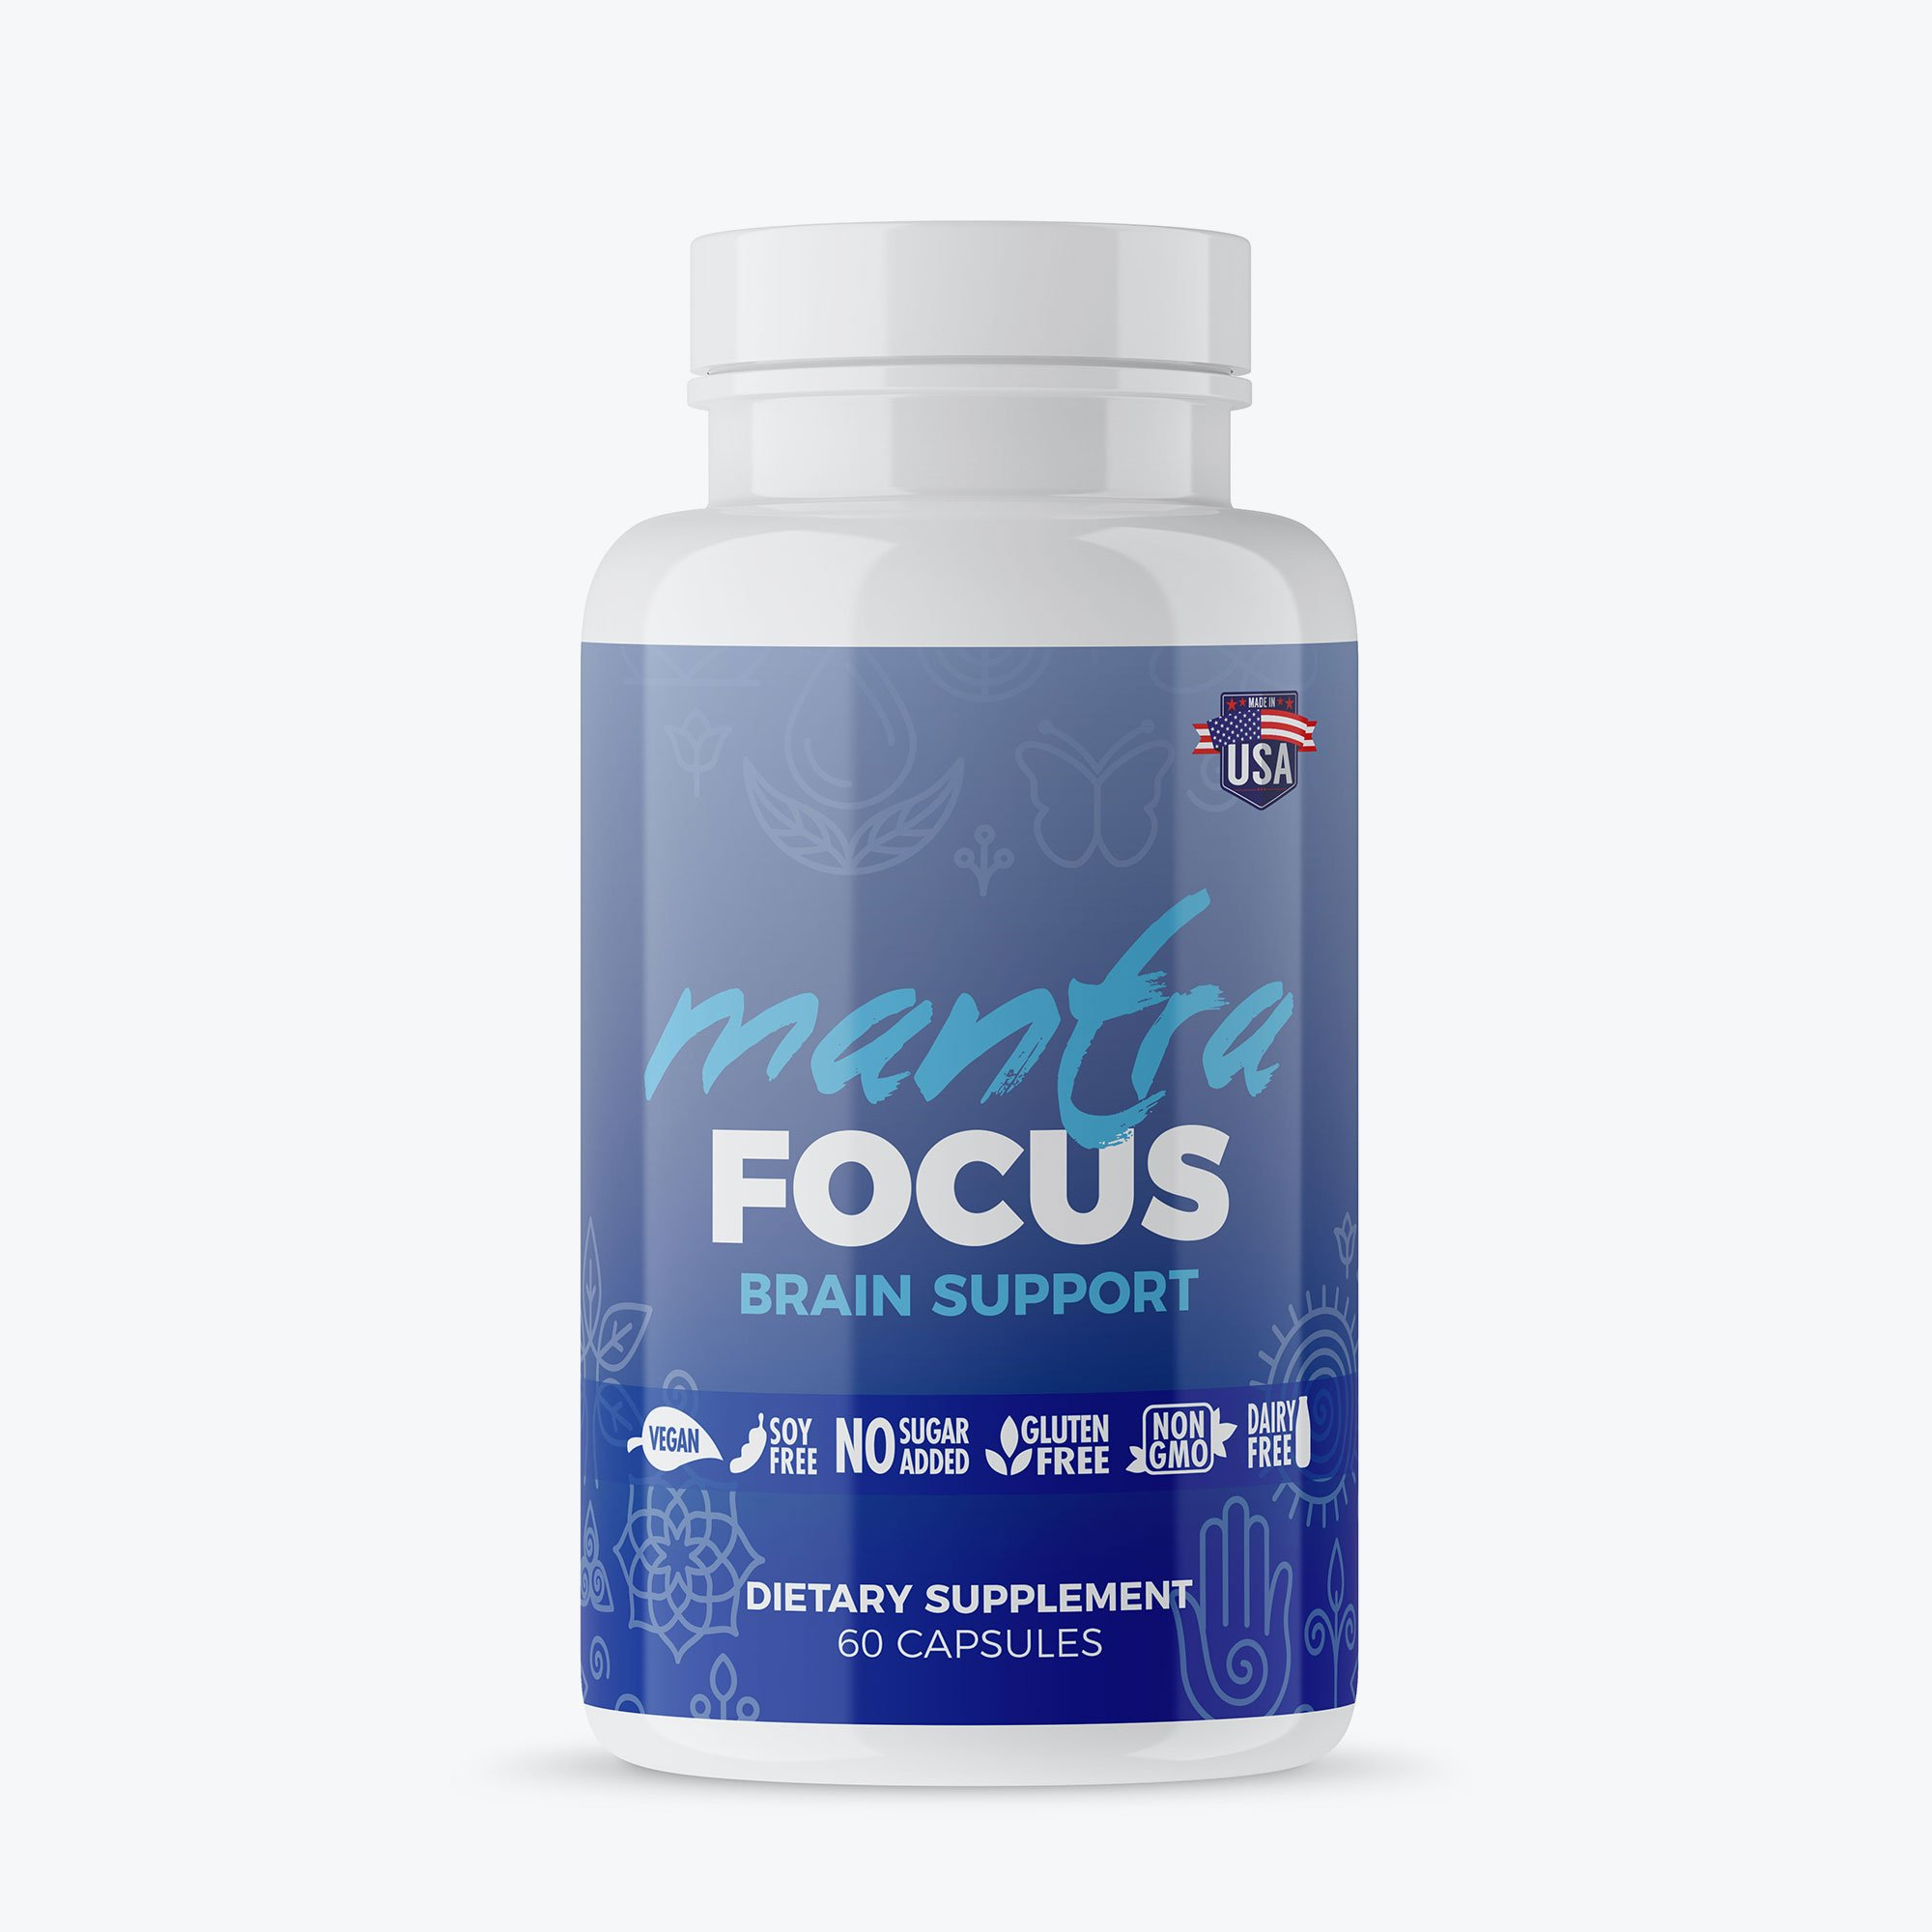 Image of Mantra Focus Brain Support